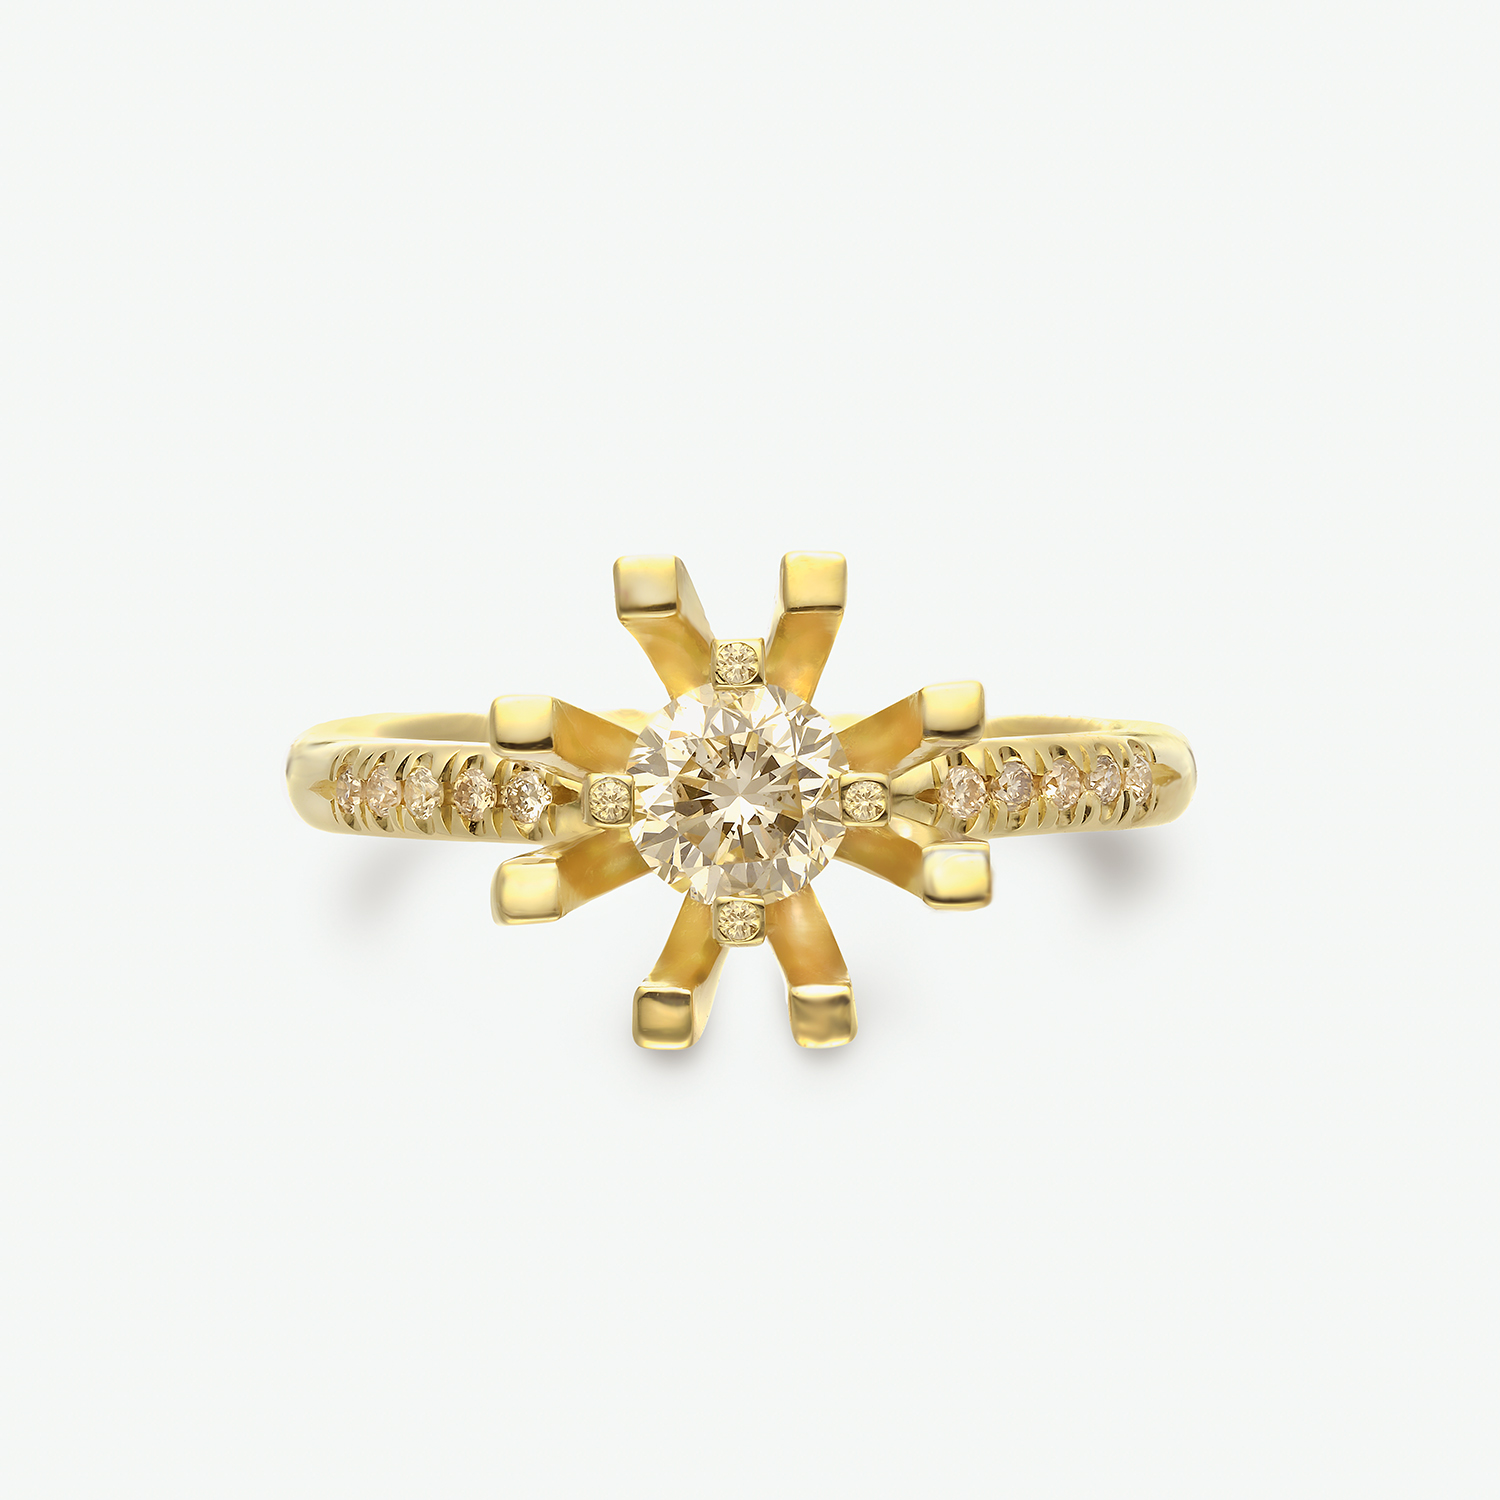 This breathtaking ring is composed of 14k yellow gold and set with champagne and cognac diamonds. CD: 0.40 ct. SD: 0.11 ct